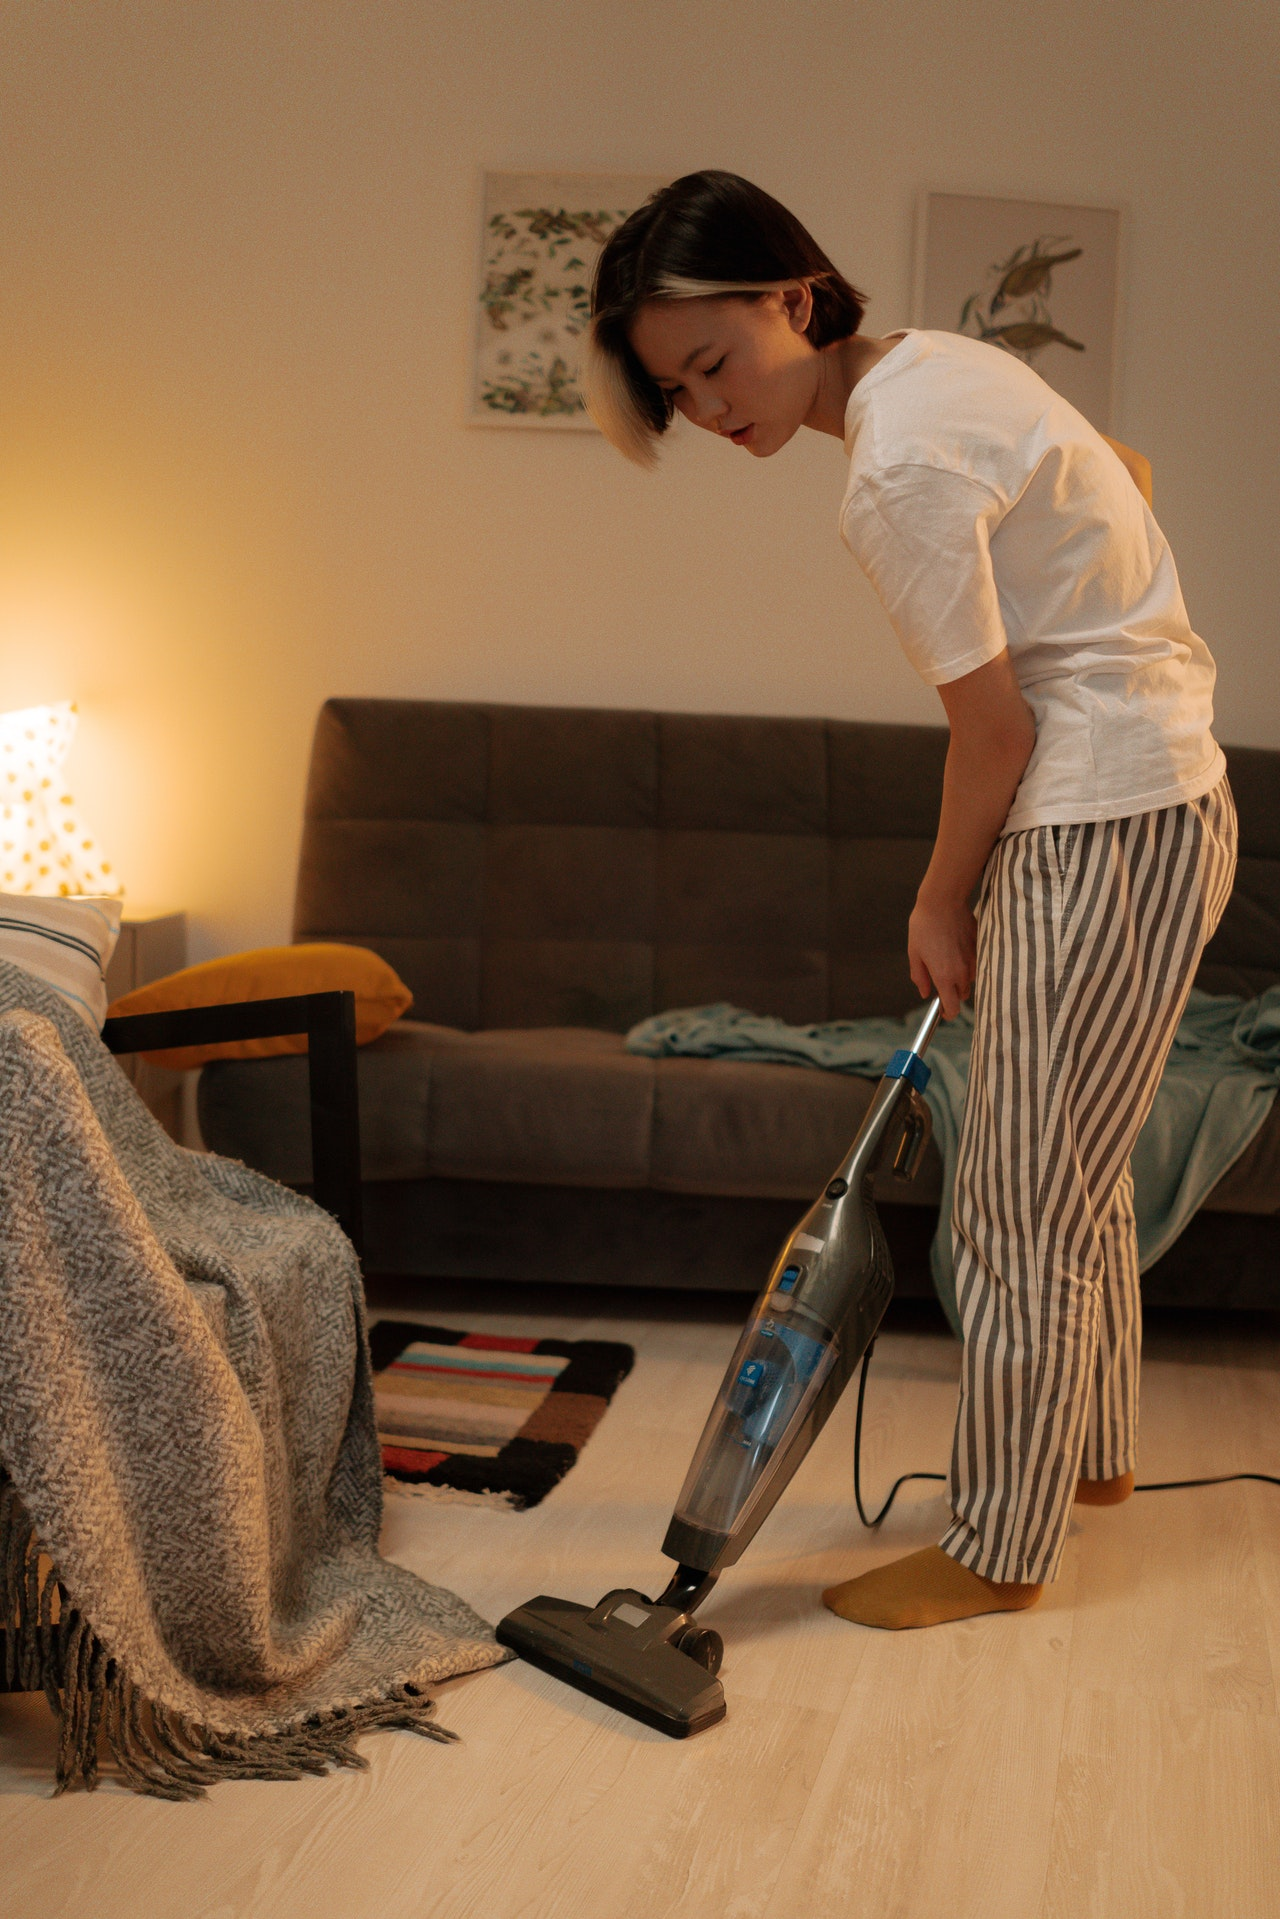 Best Vacuum Cleaners 2021 Article Image